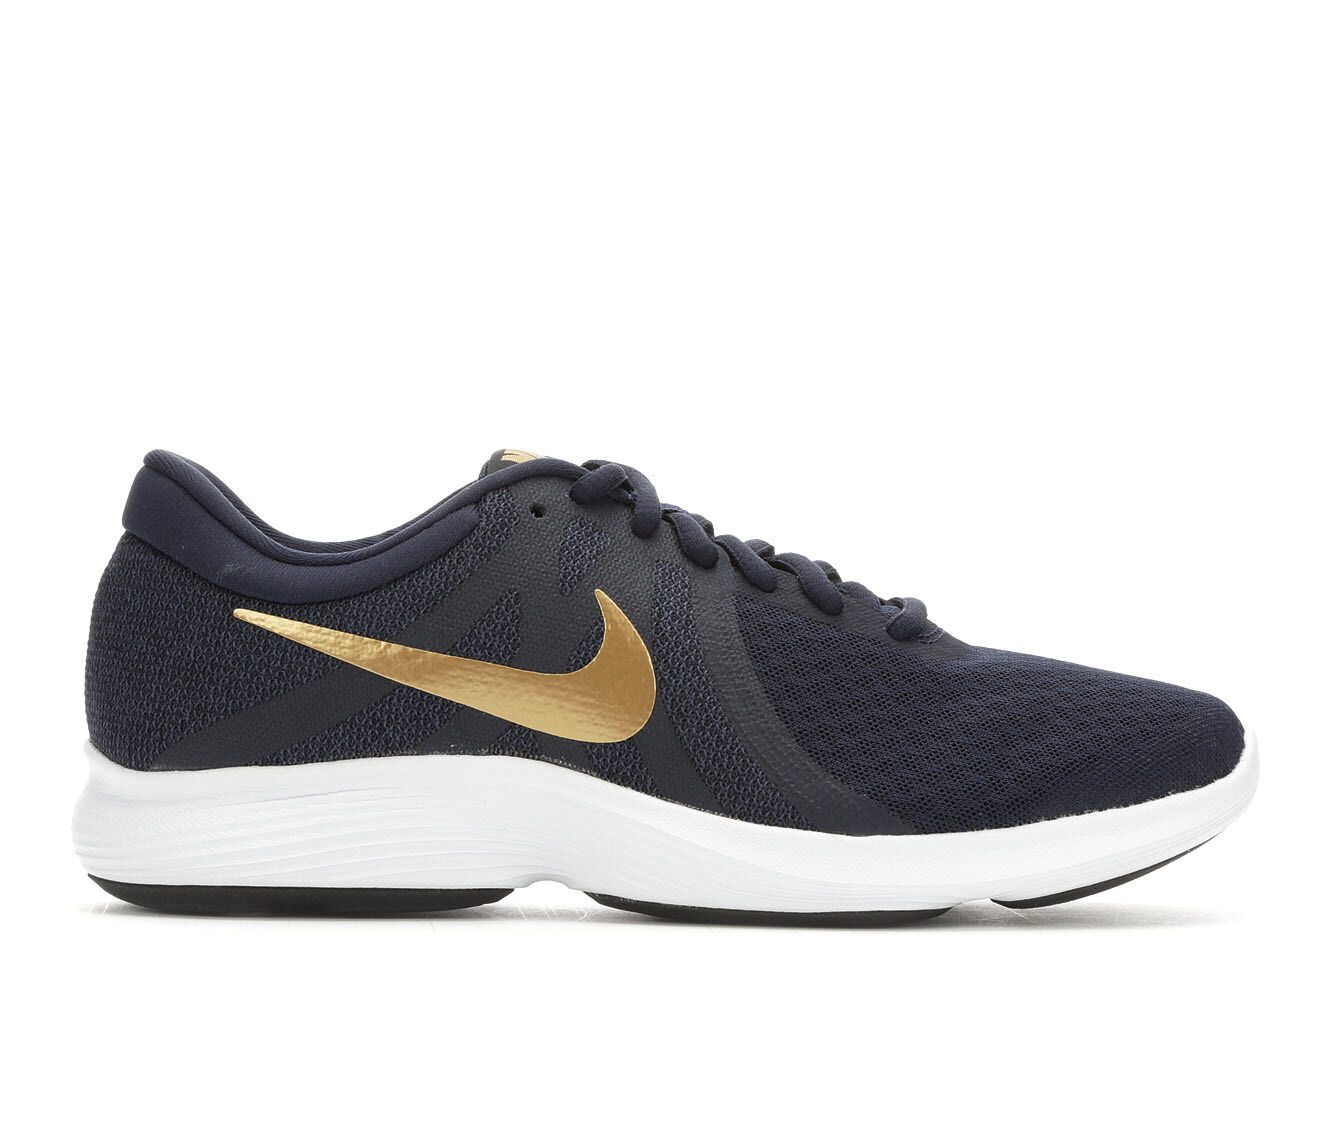 choose comfortable authentic Women's Nike Revolution 4 Running Shoes Obsidian/Gld/Bk